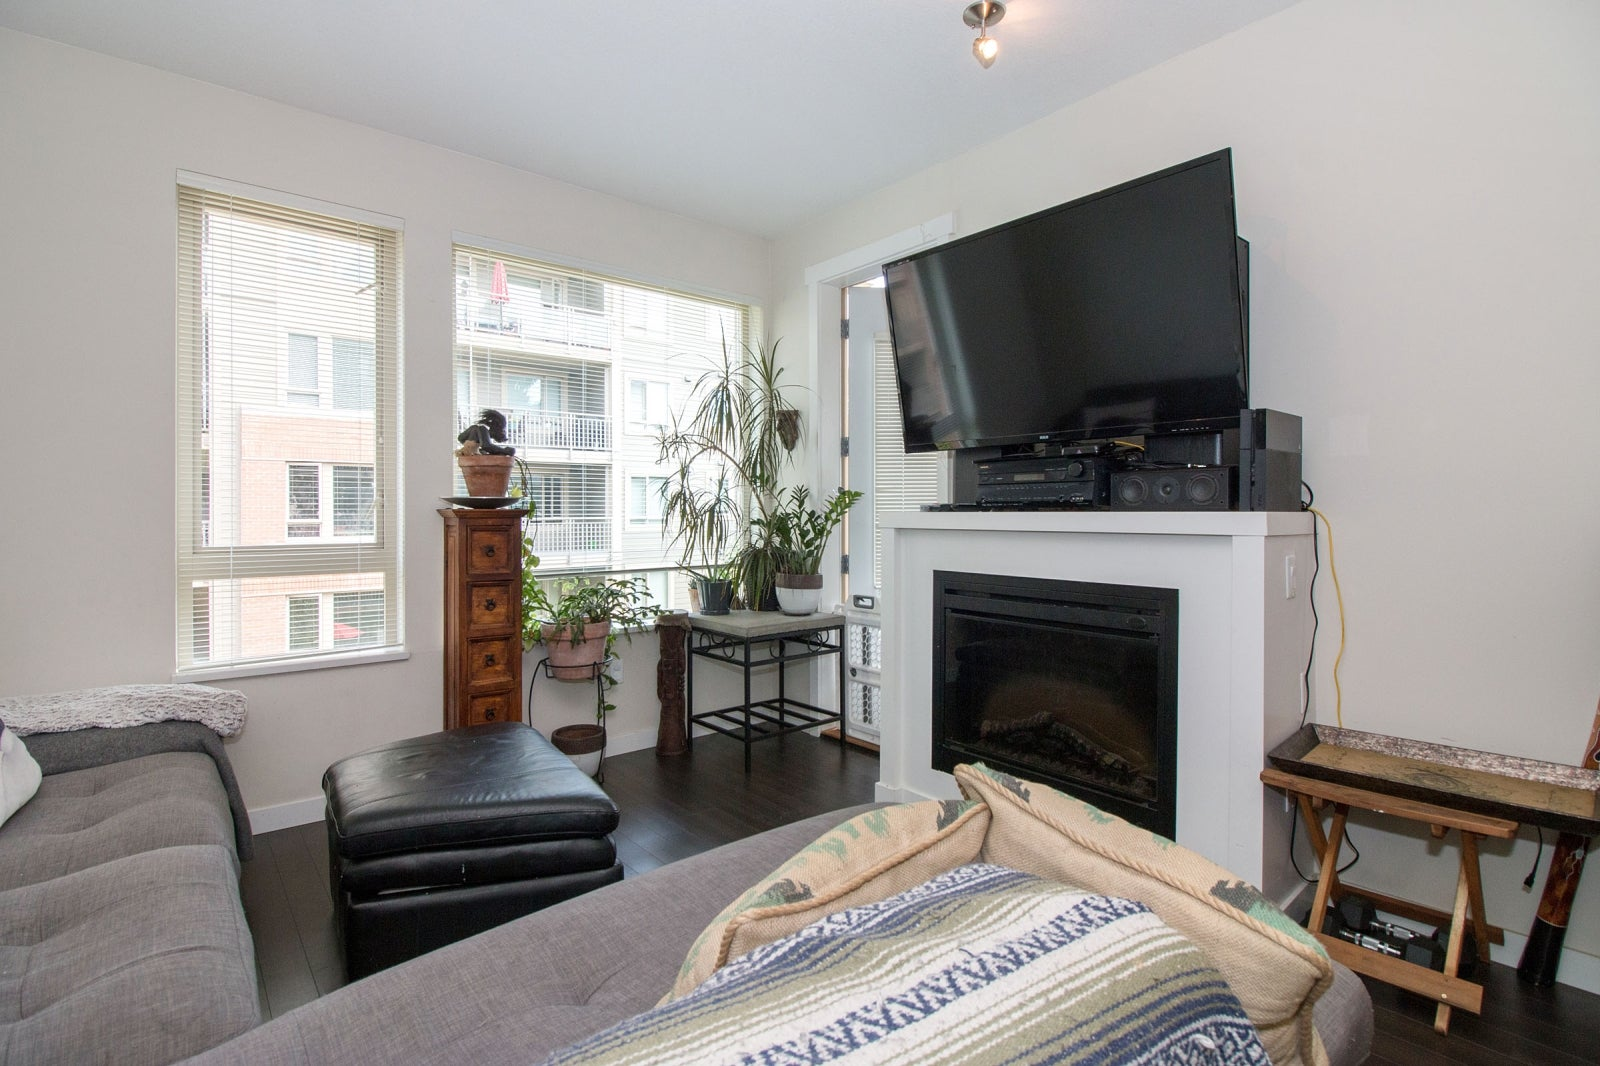 306 139 W 22ND STREET - Central Lonsdale Apartment/Condo for sale, 2 Bedrooms (R2201915) #5